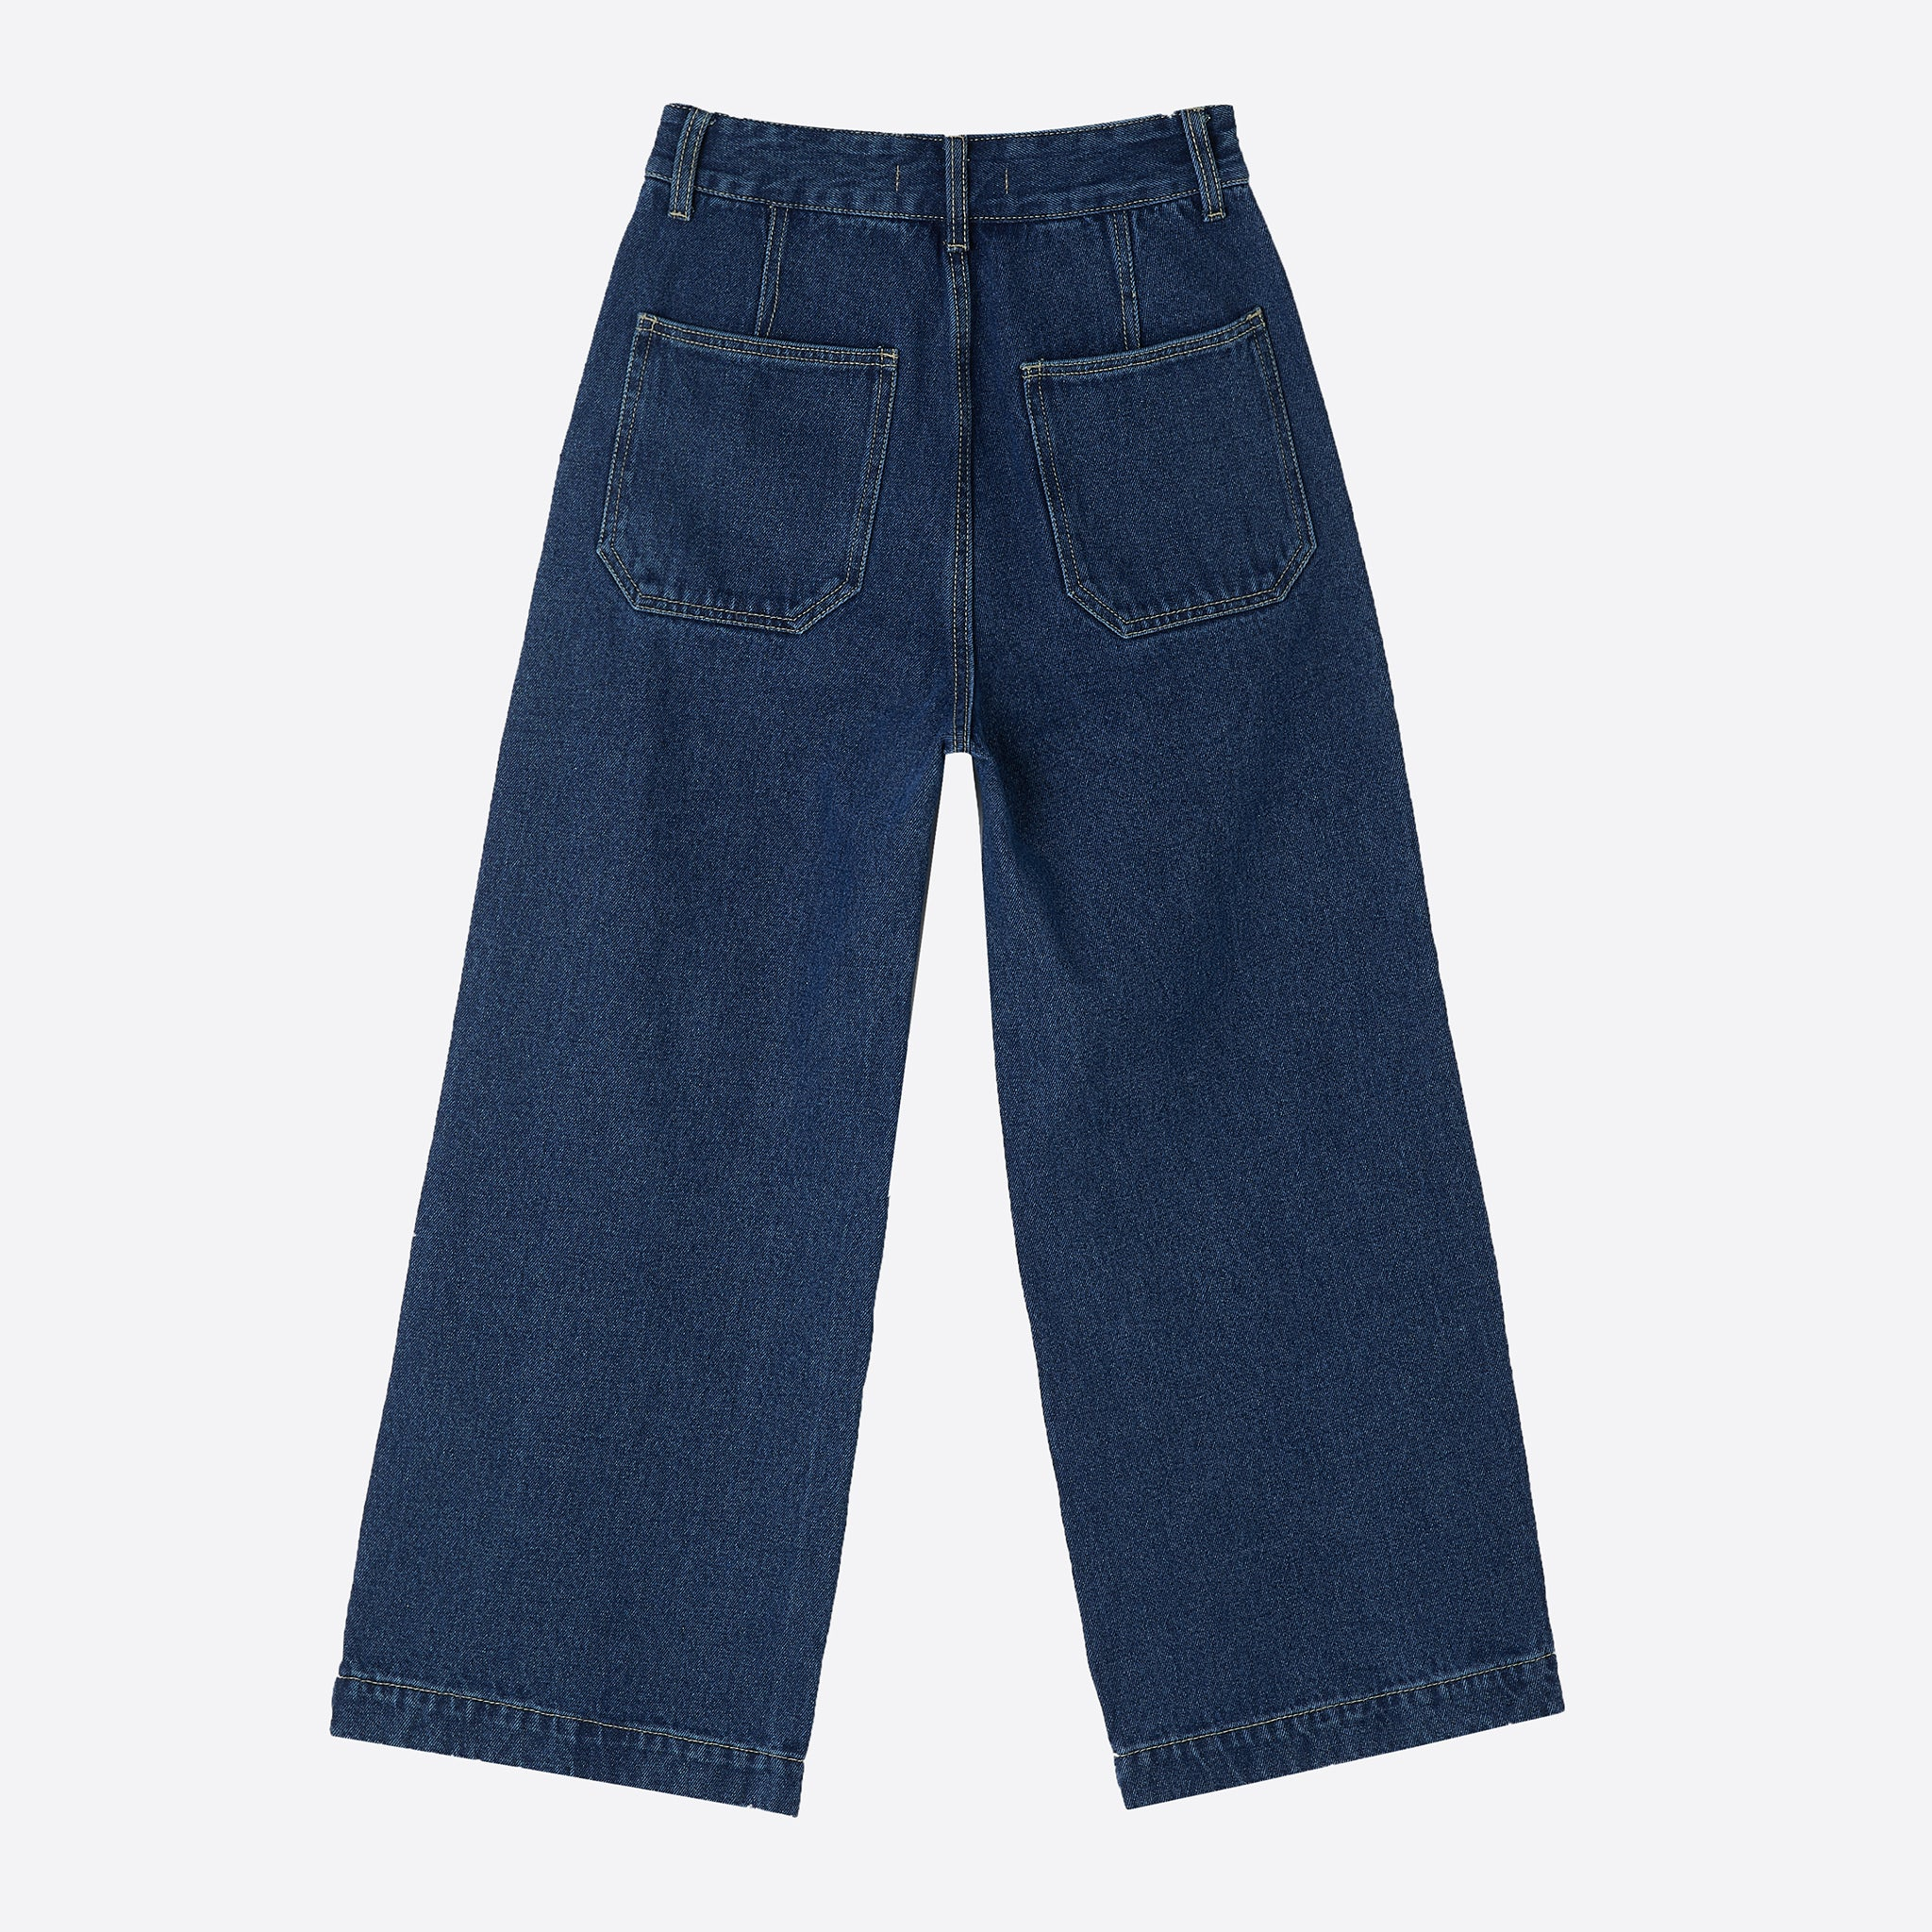 Sideline Lola Jeans in Denim